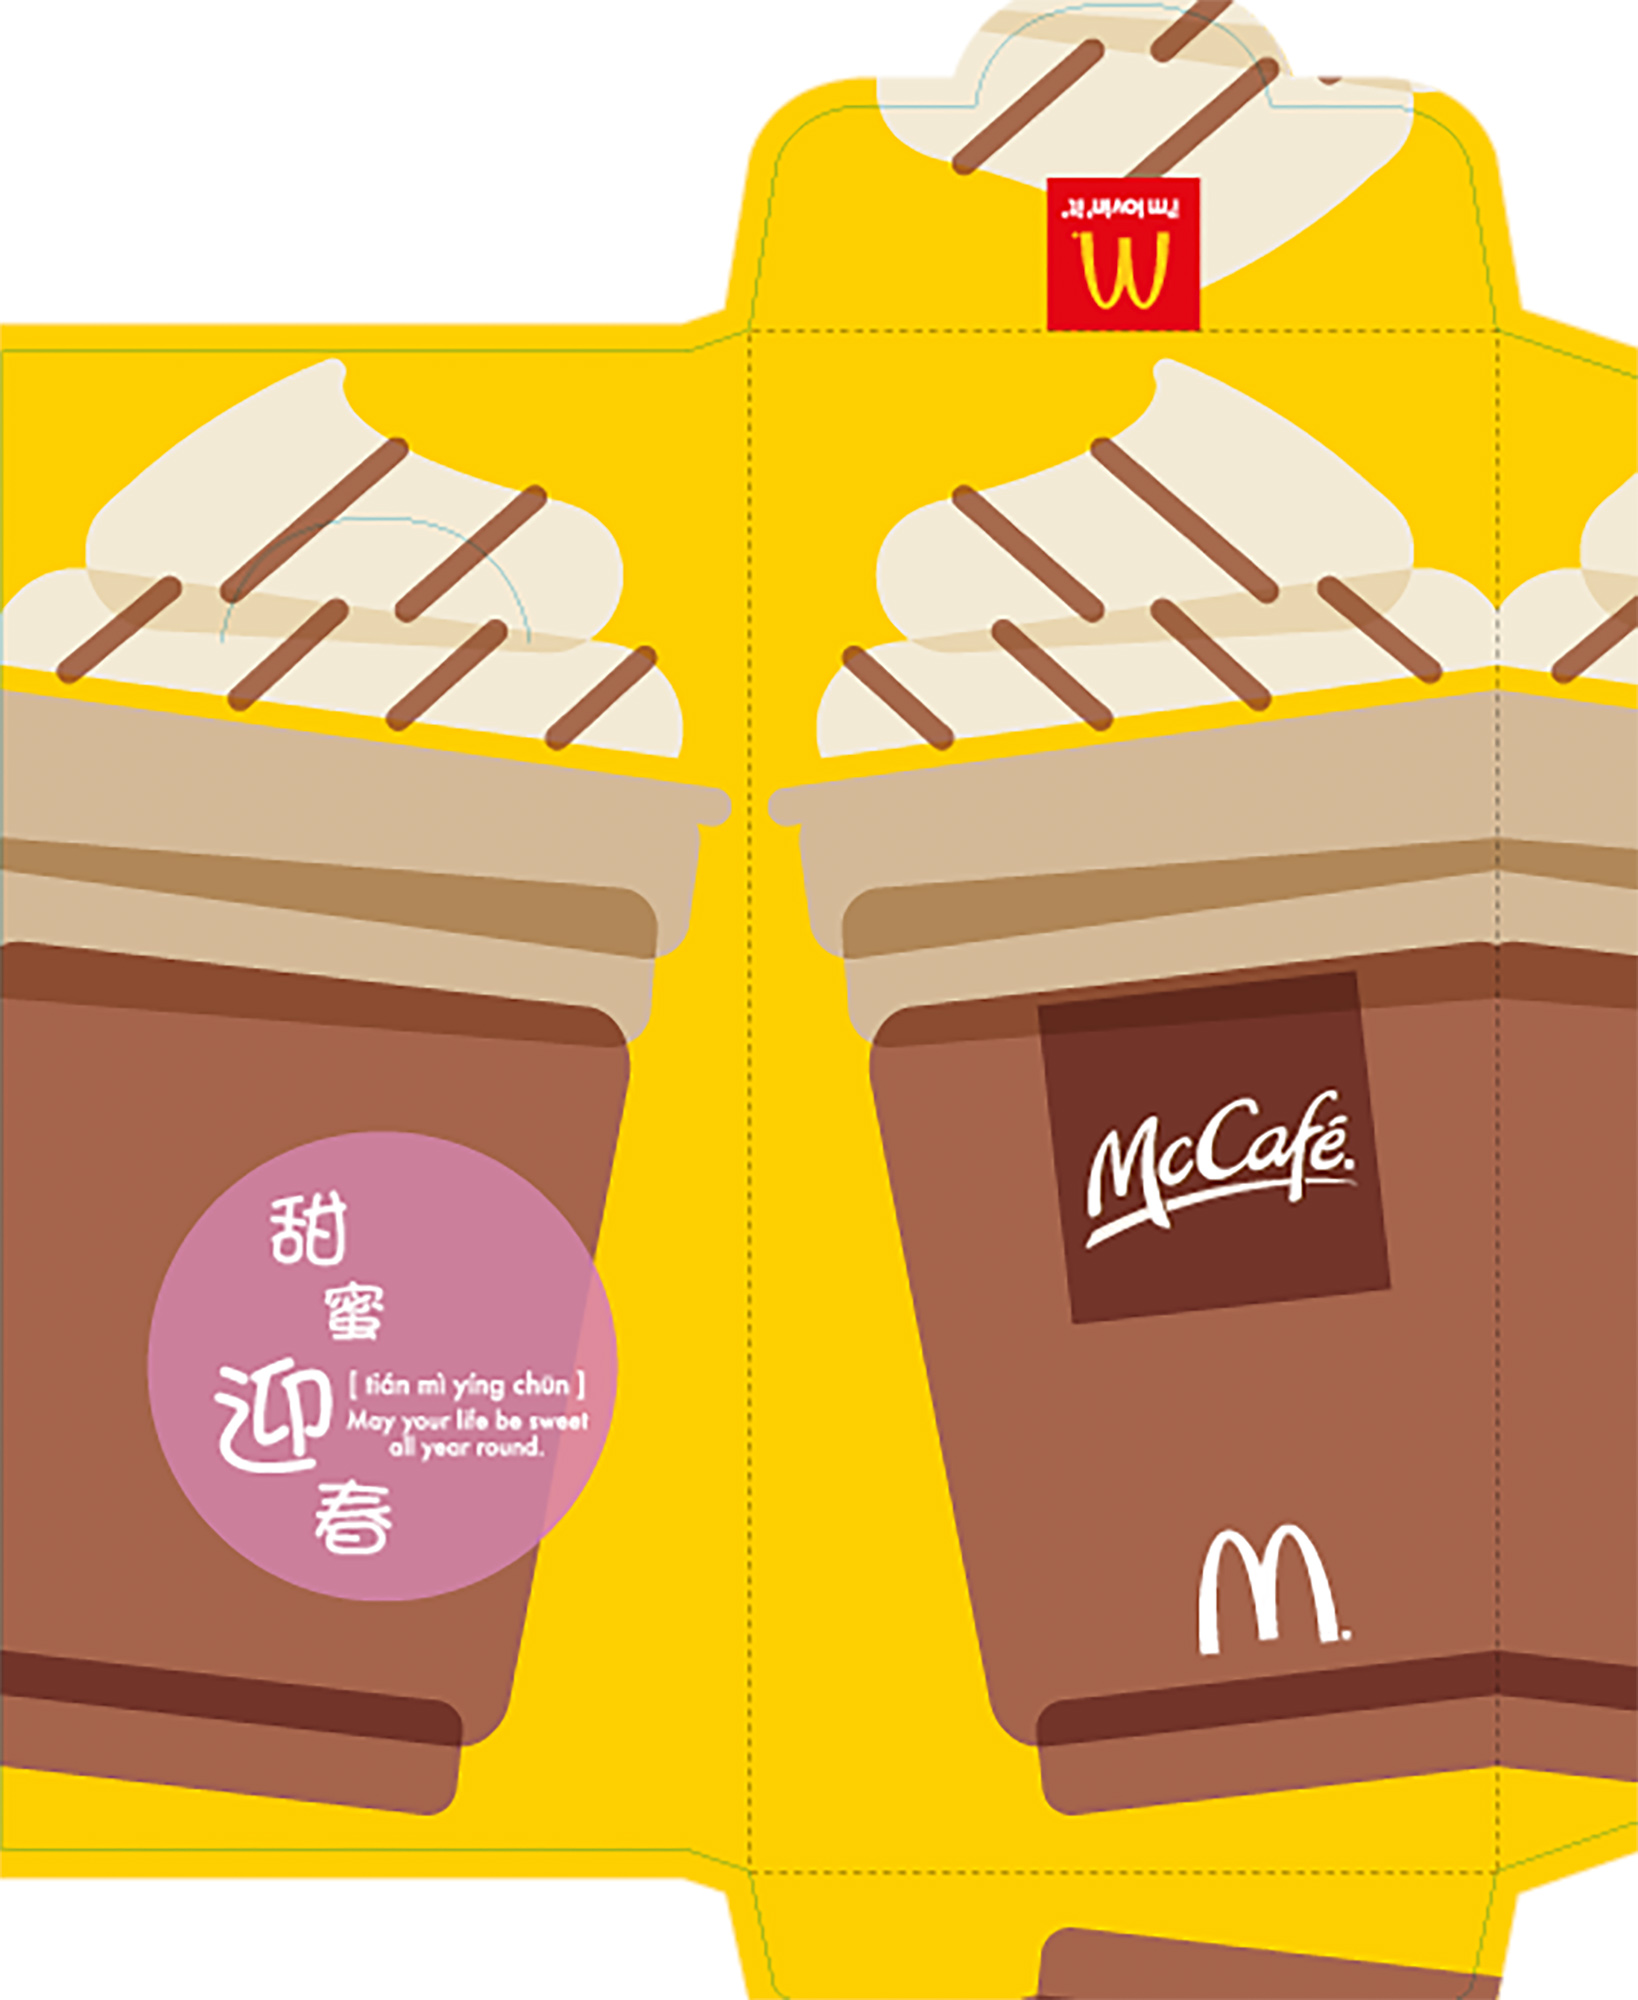 Celebrate Chinese New Year with Mcdonald's new Golden Prosperity.